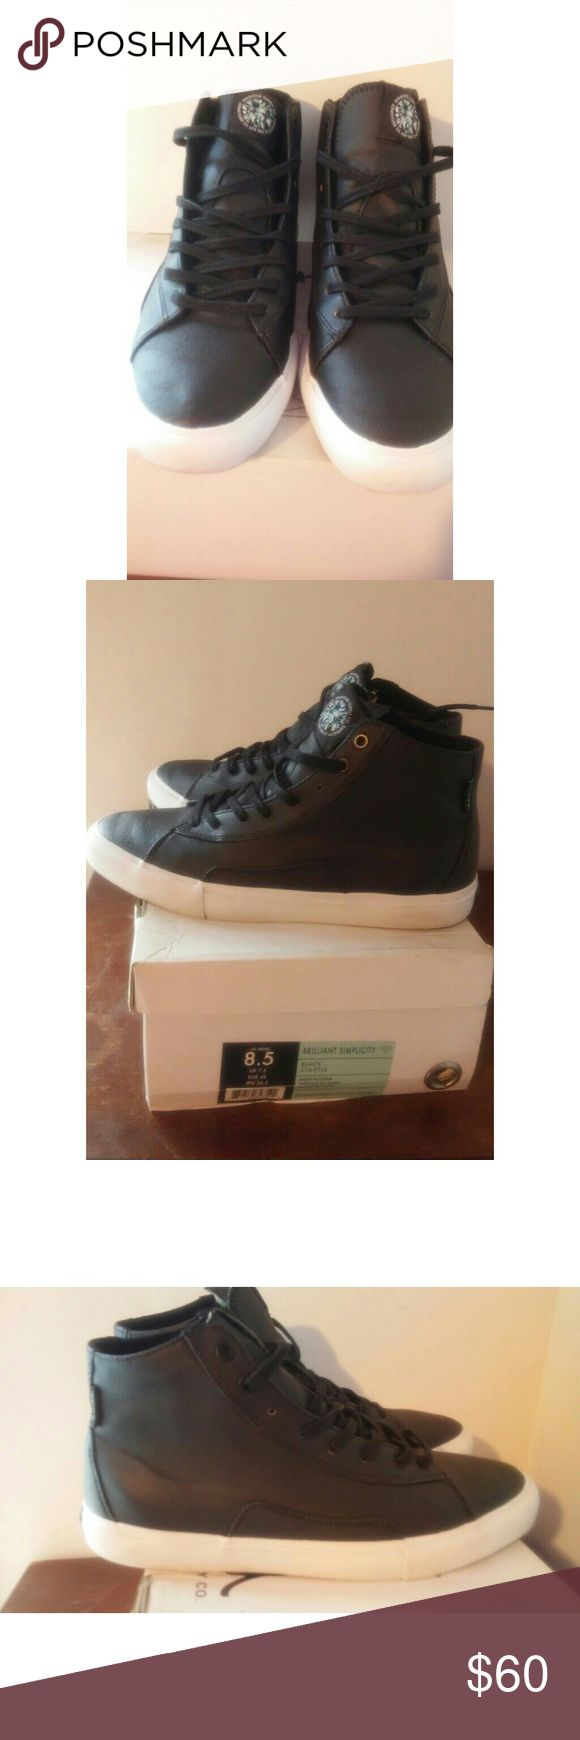 DIAMOND SUPPLY CO. Brilliant Simplicity BLK DIAMOND SUPPLY CO. Brilliant Simplicity BLK high top shoes. Used once/ no scuffs or marks. Like brand new. Men's size 8.5/ Women's size 10.5. In original box. Any ?s please ask. Diamond Supply Co. Shoes Sneakers